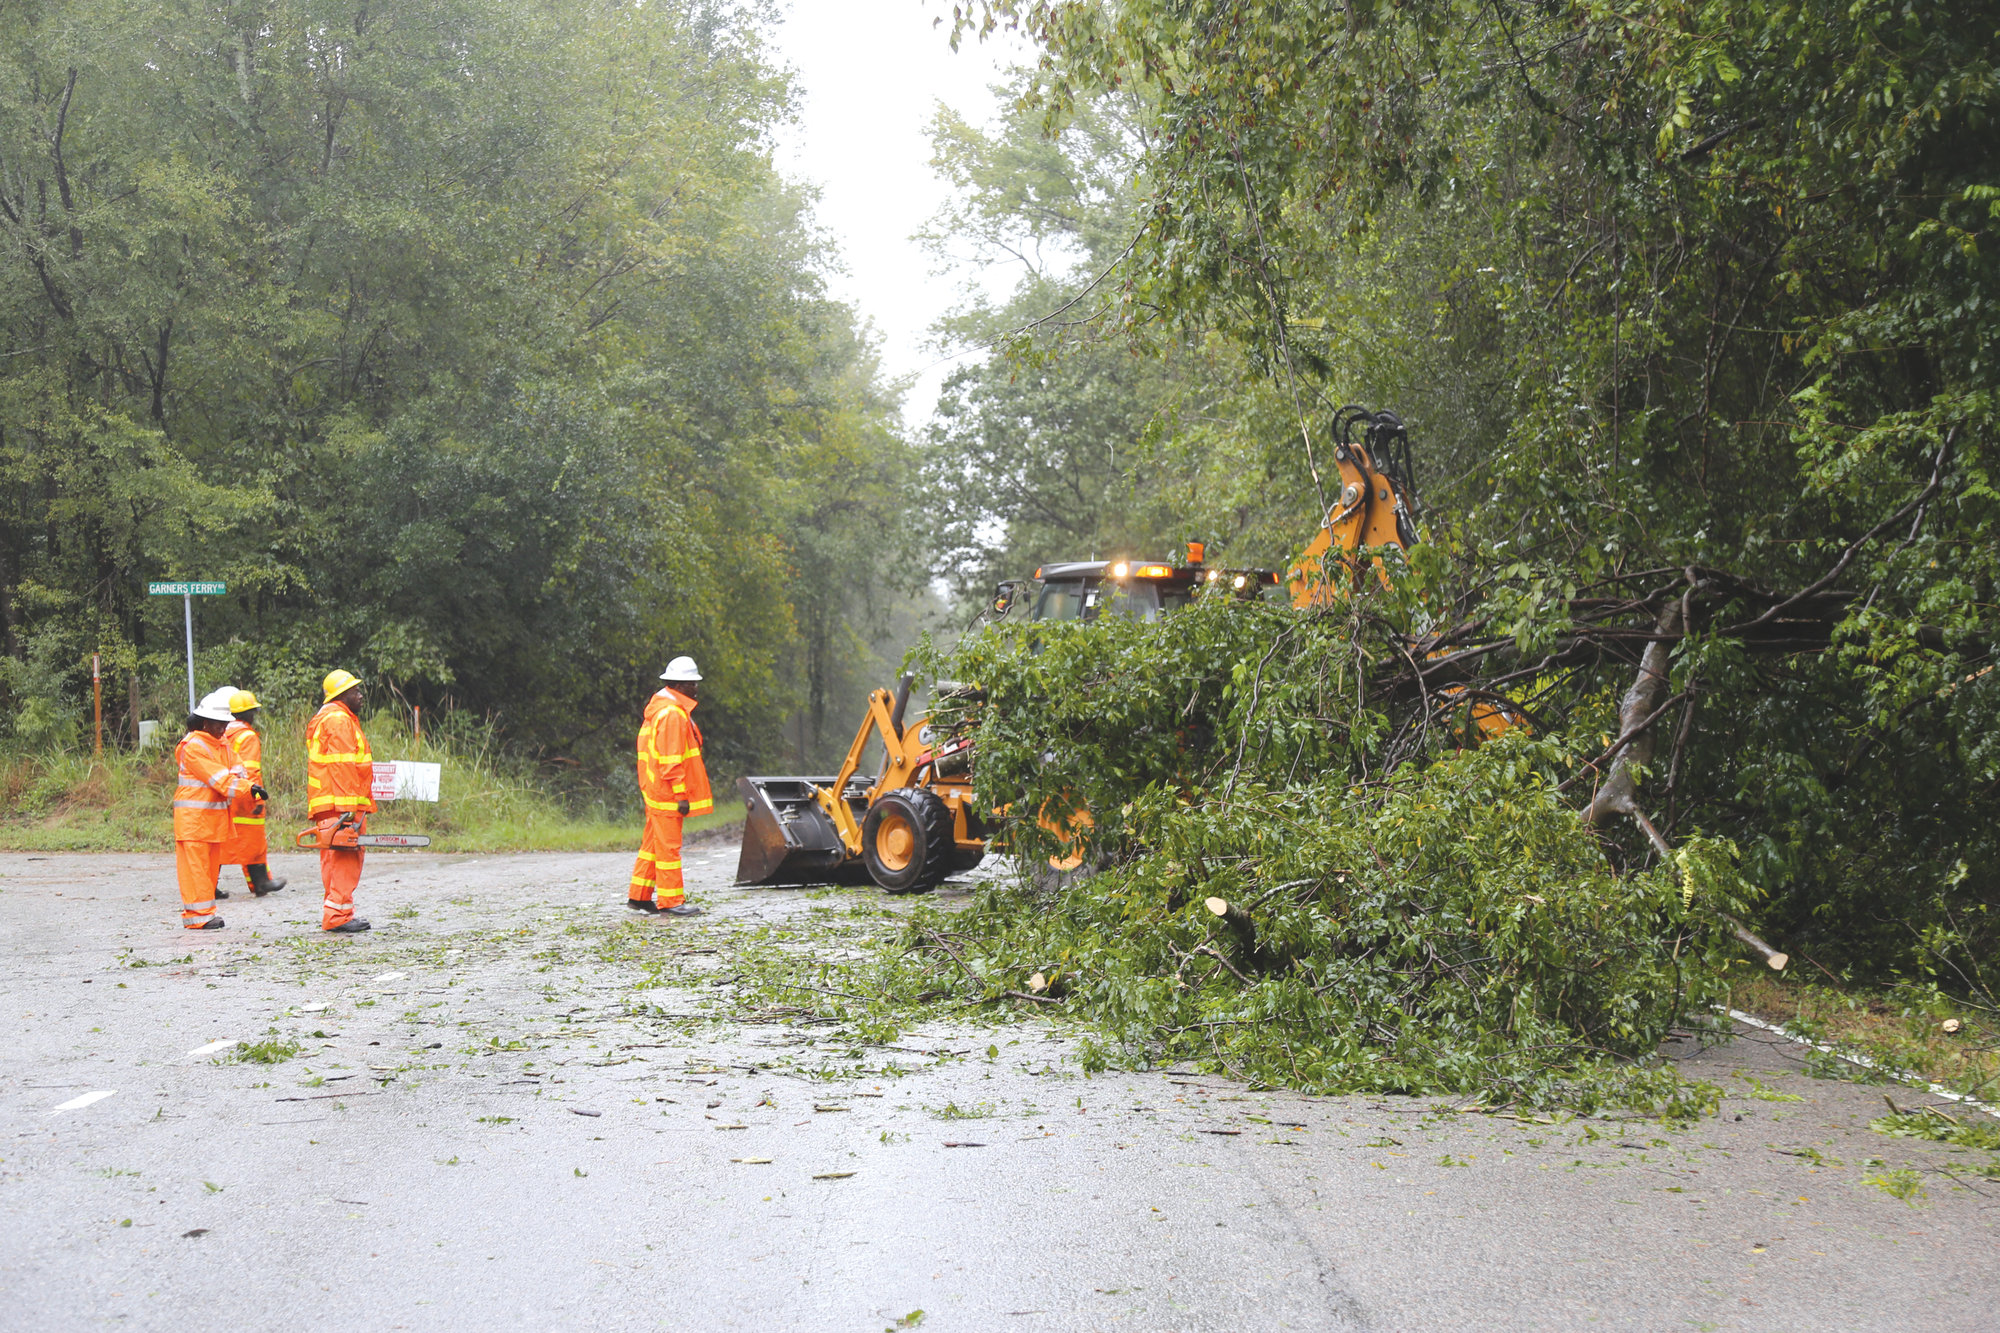 A work crew removes part of a tree that fell on North Kings Highway/S.C. 261 on Thursday.